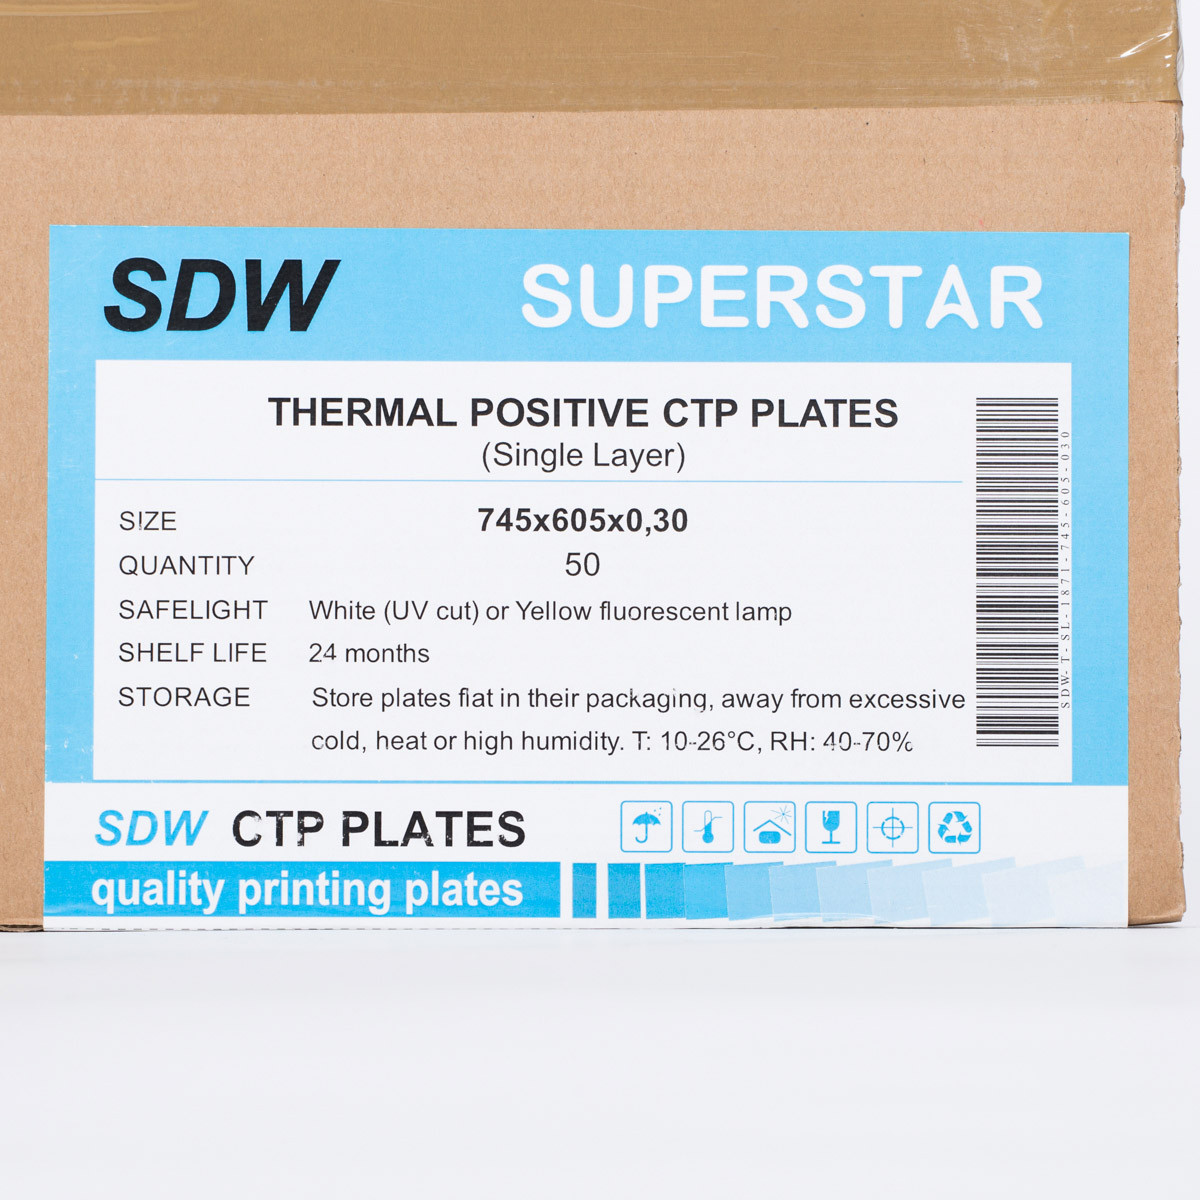 SDW CTP PLATE -single layer 745x605x0,30x50